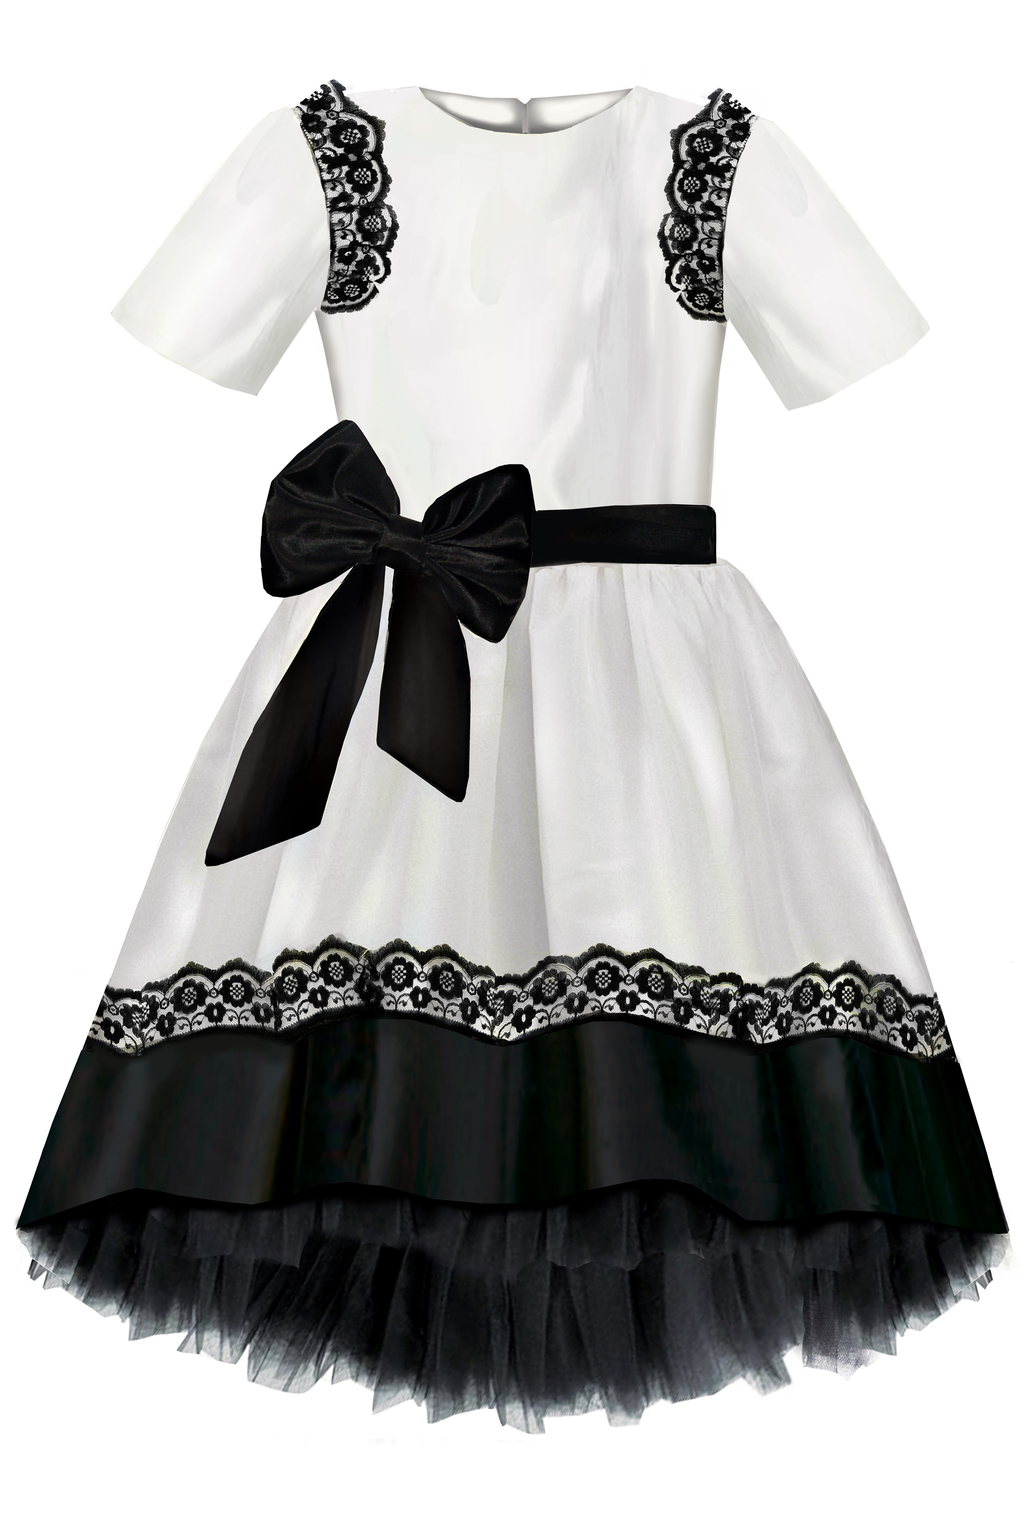 White Monaco Taffeta Dress with Black Lace and Tulle Petticoats - LAZY FRANCIS - Shop in store at 406 Kings Road, Chelsea, London or shop online at www.lazyfrancis.com